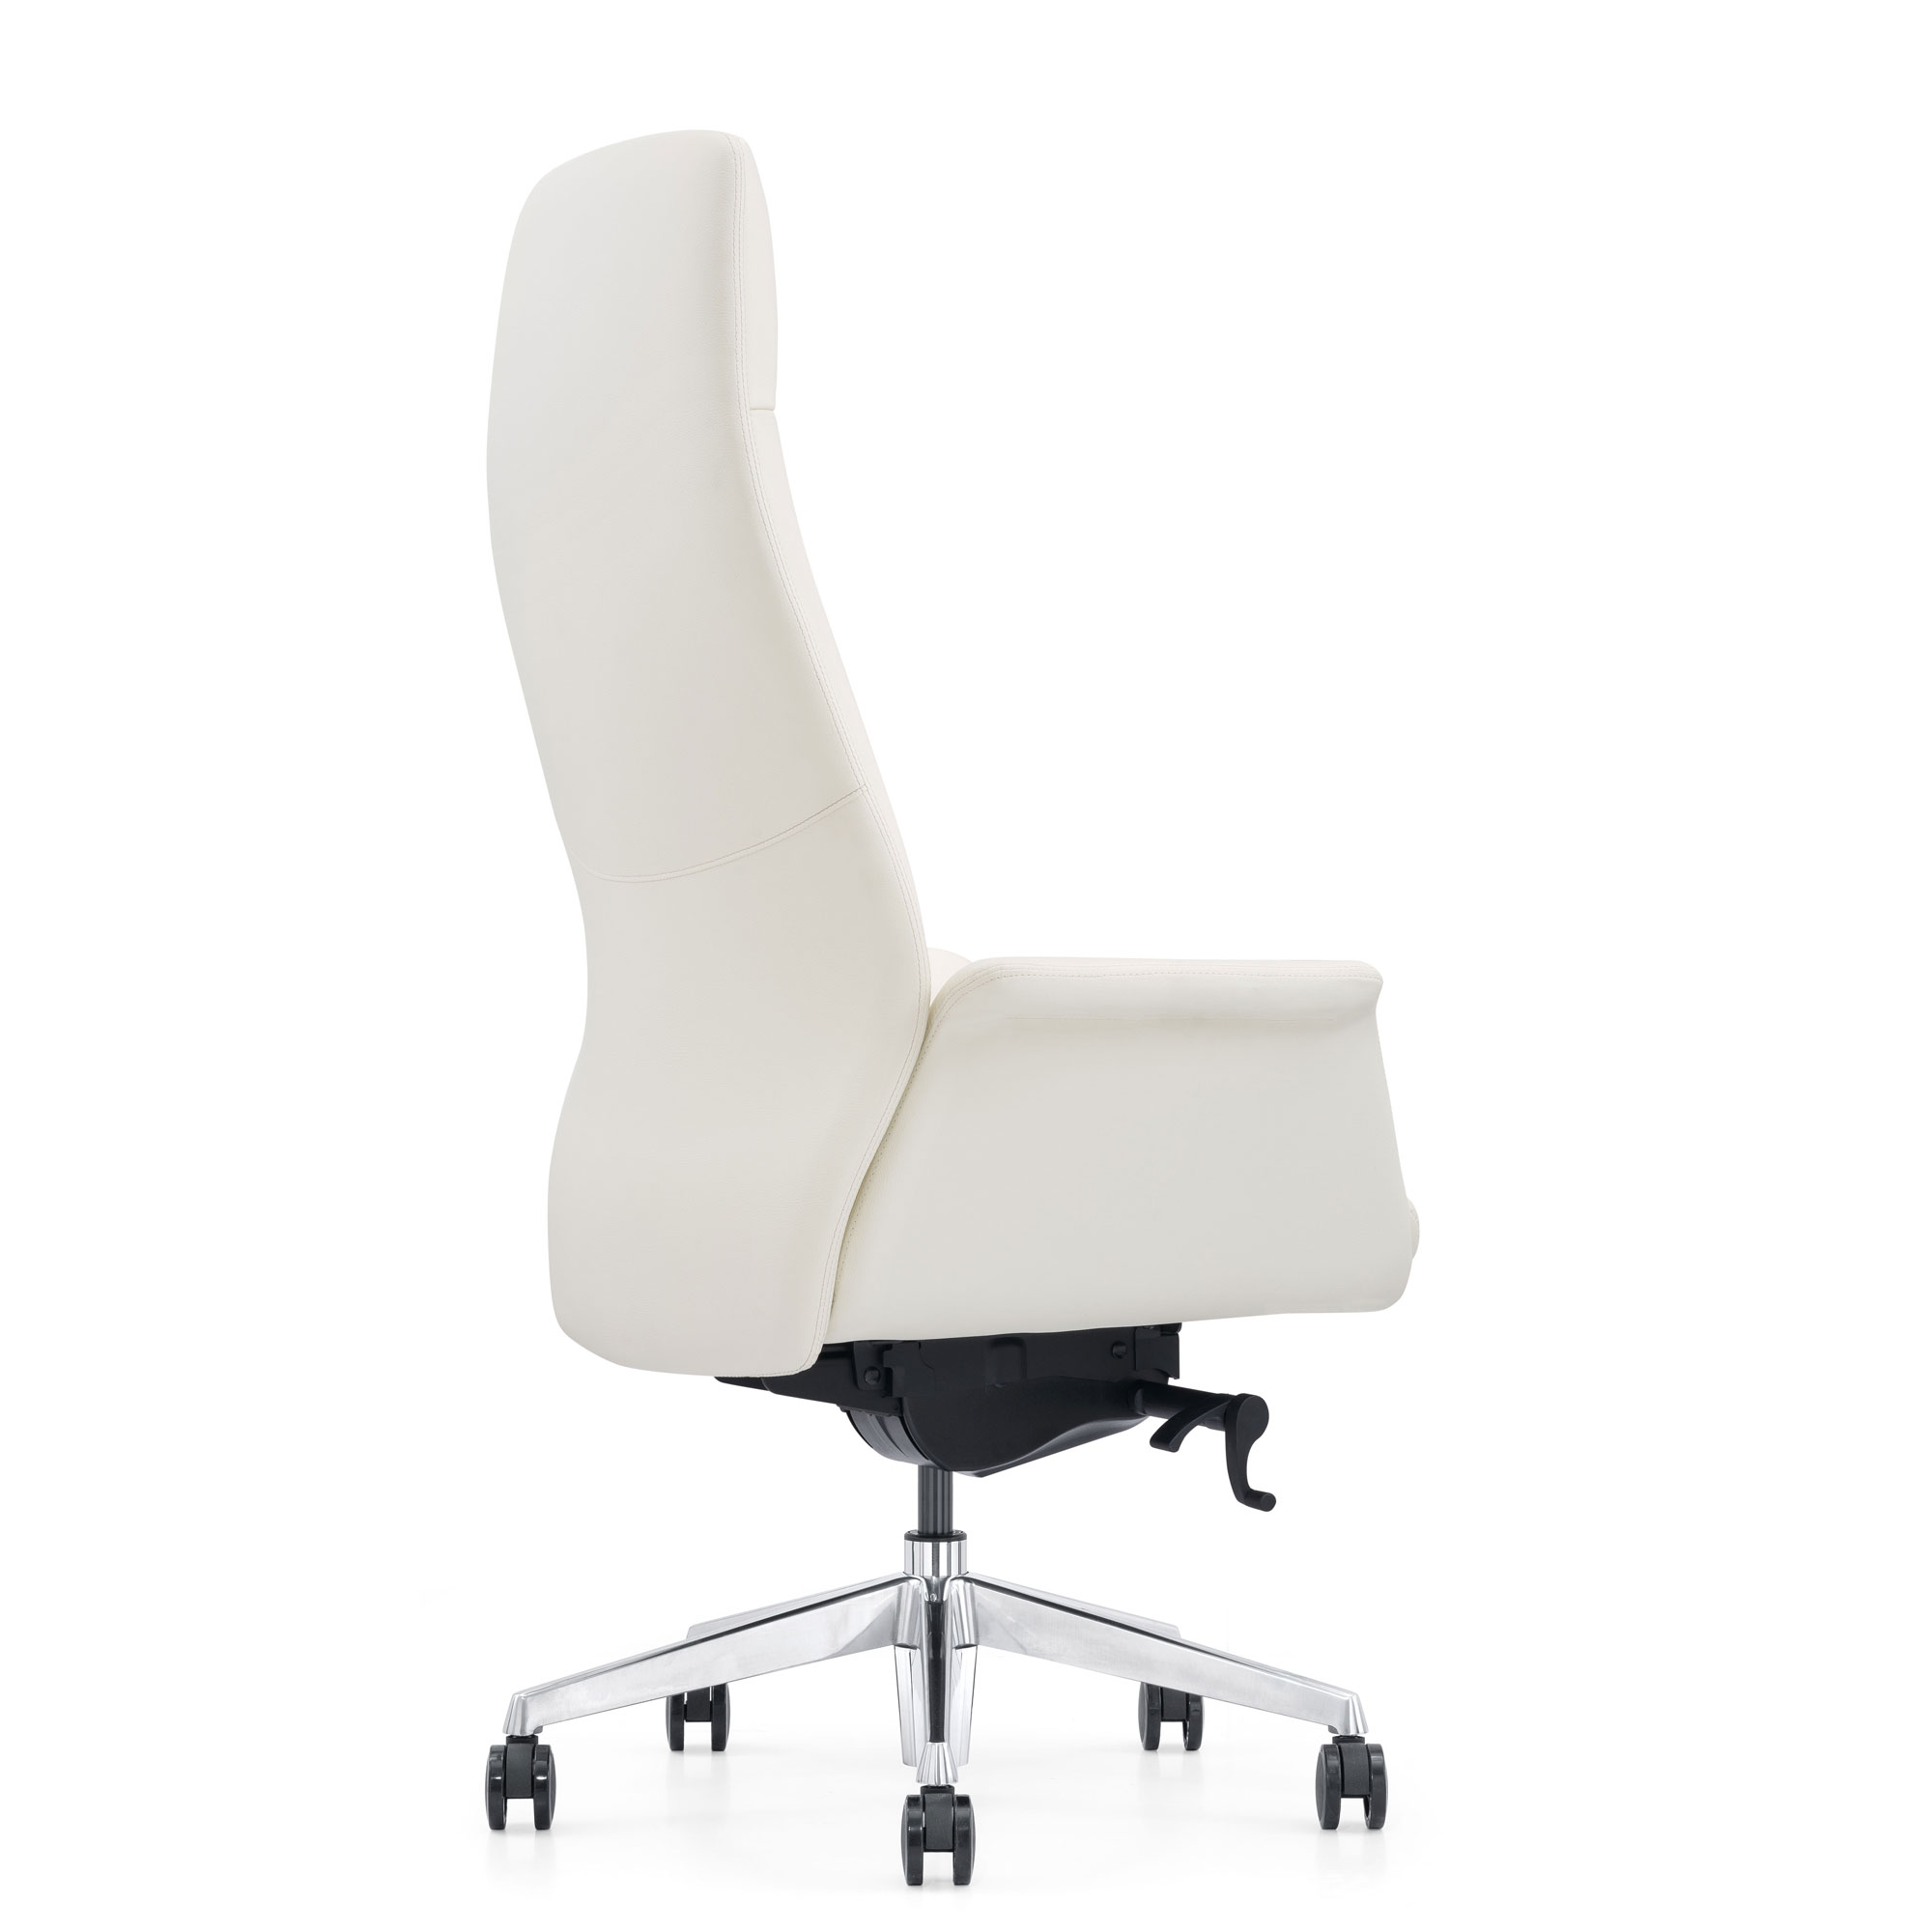 Off-white Leather Chair, Black Angle